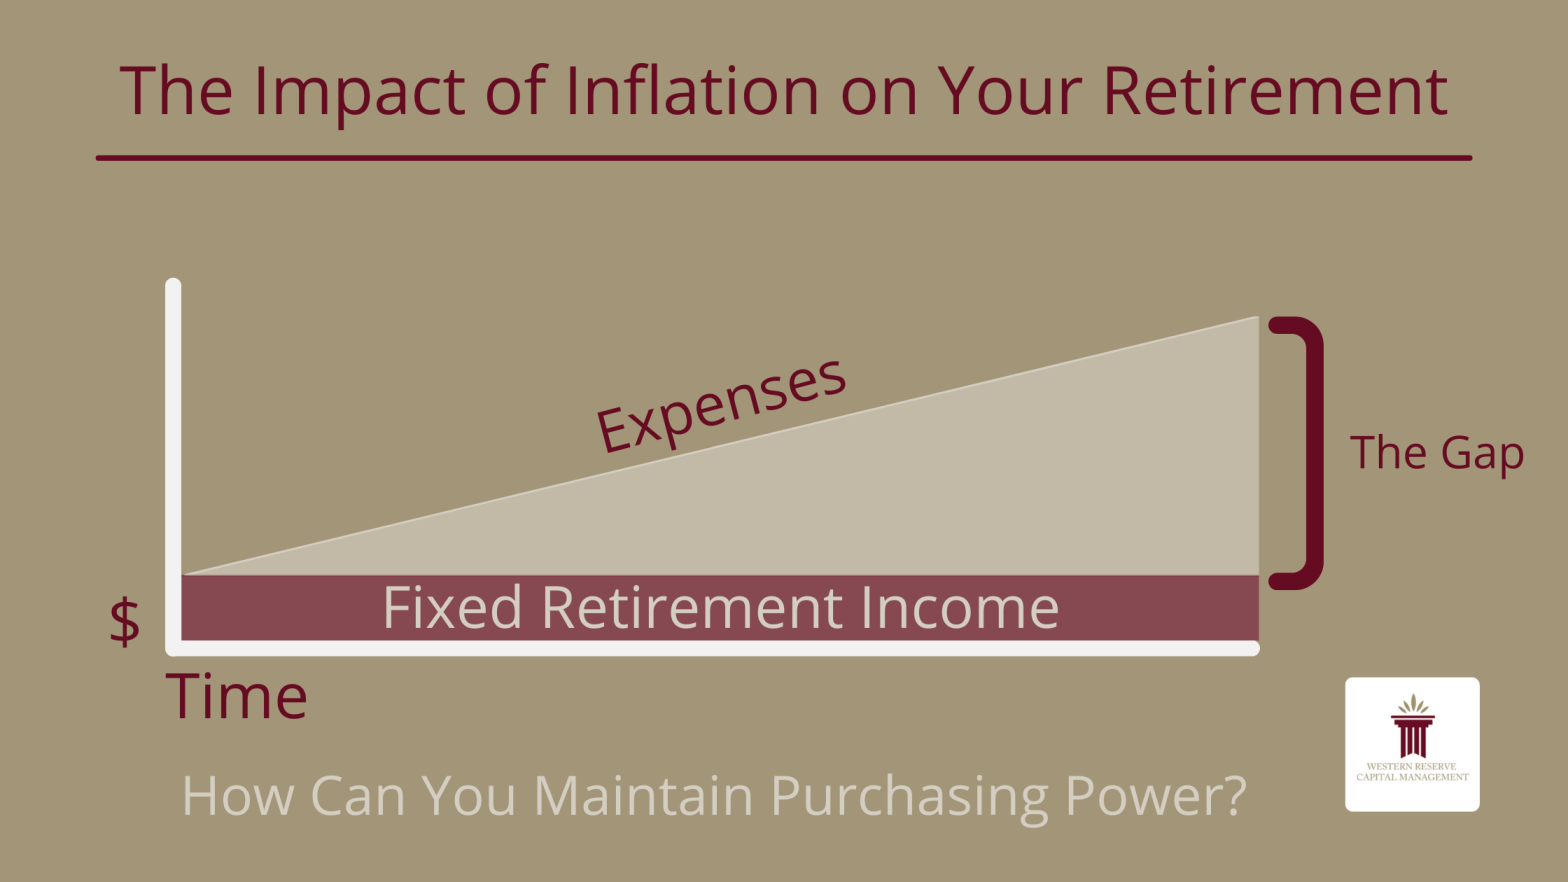 The Impact of Inflation on Your Retirement